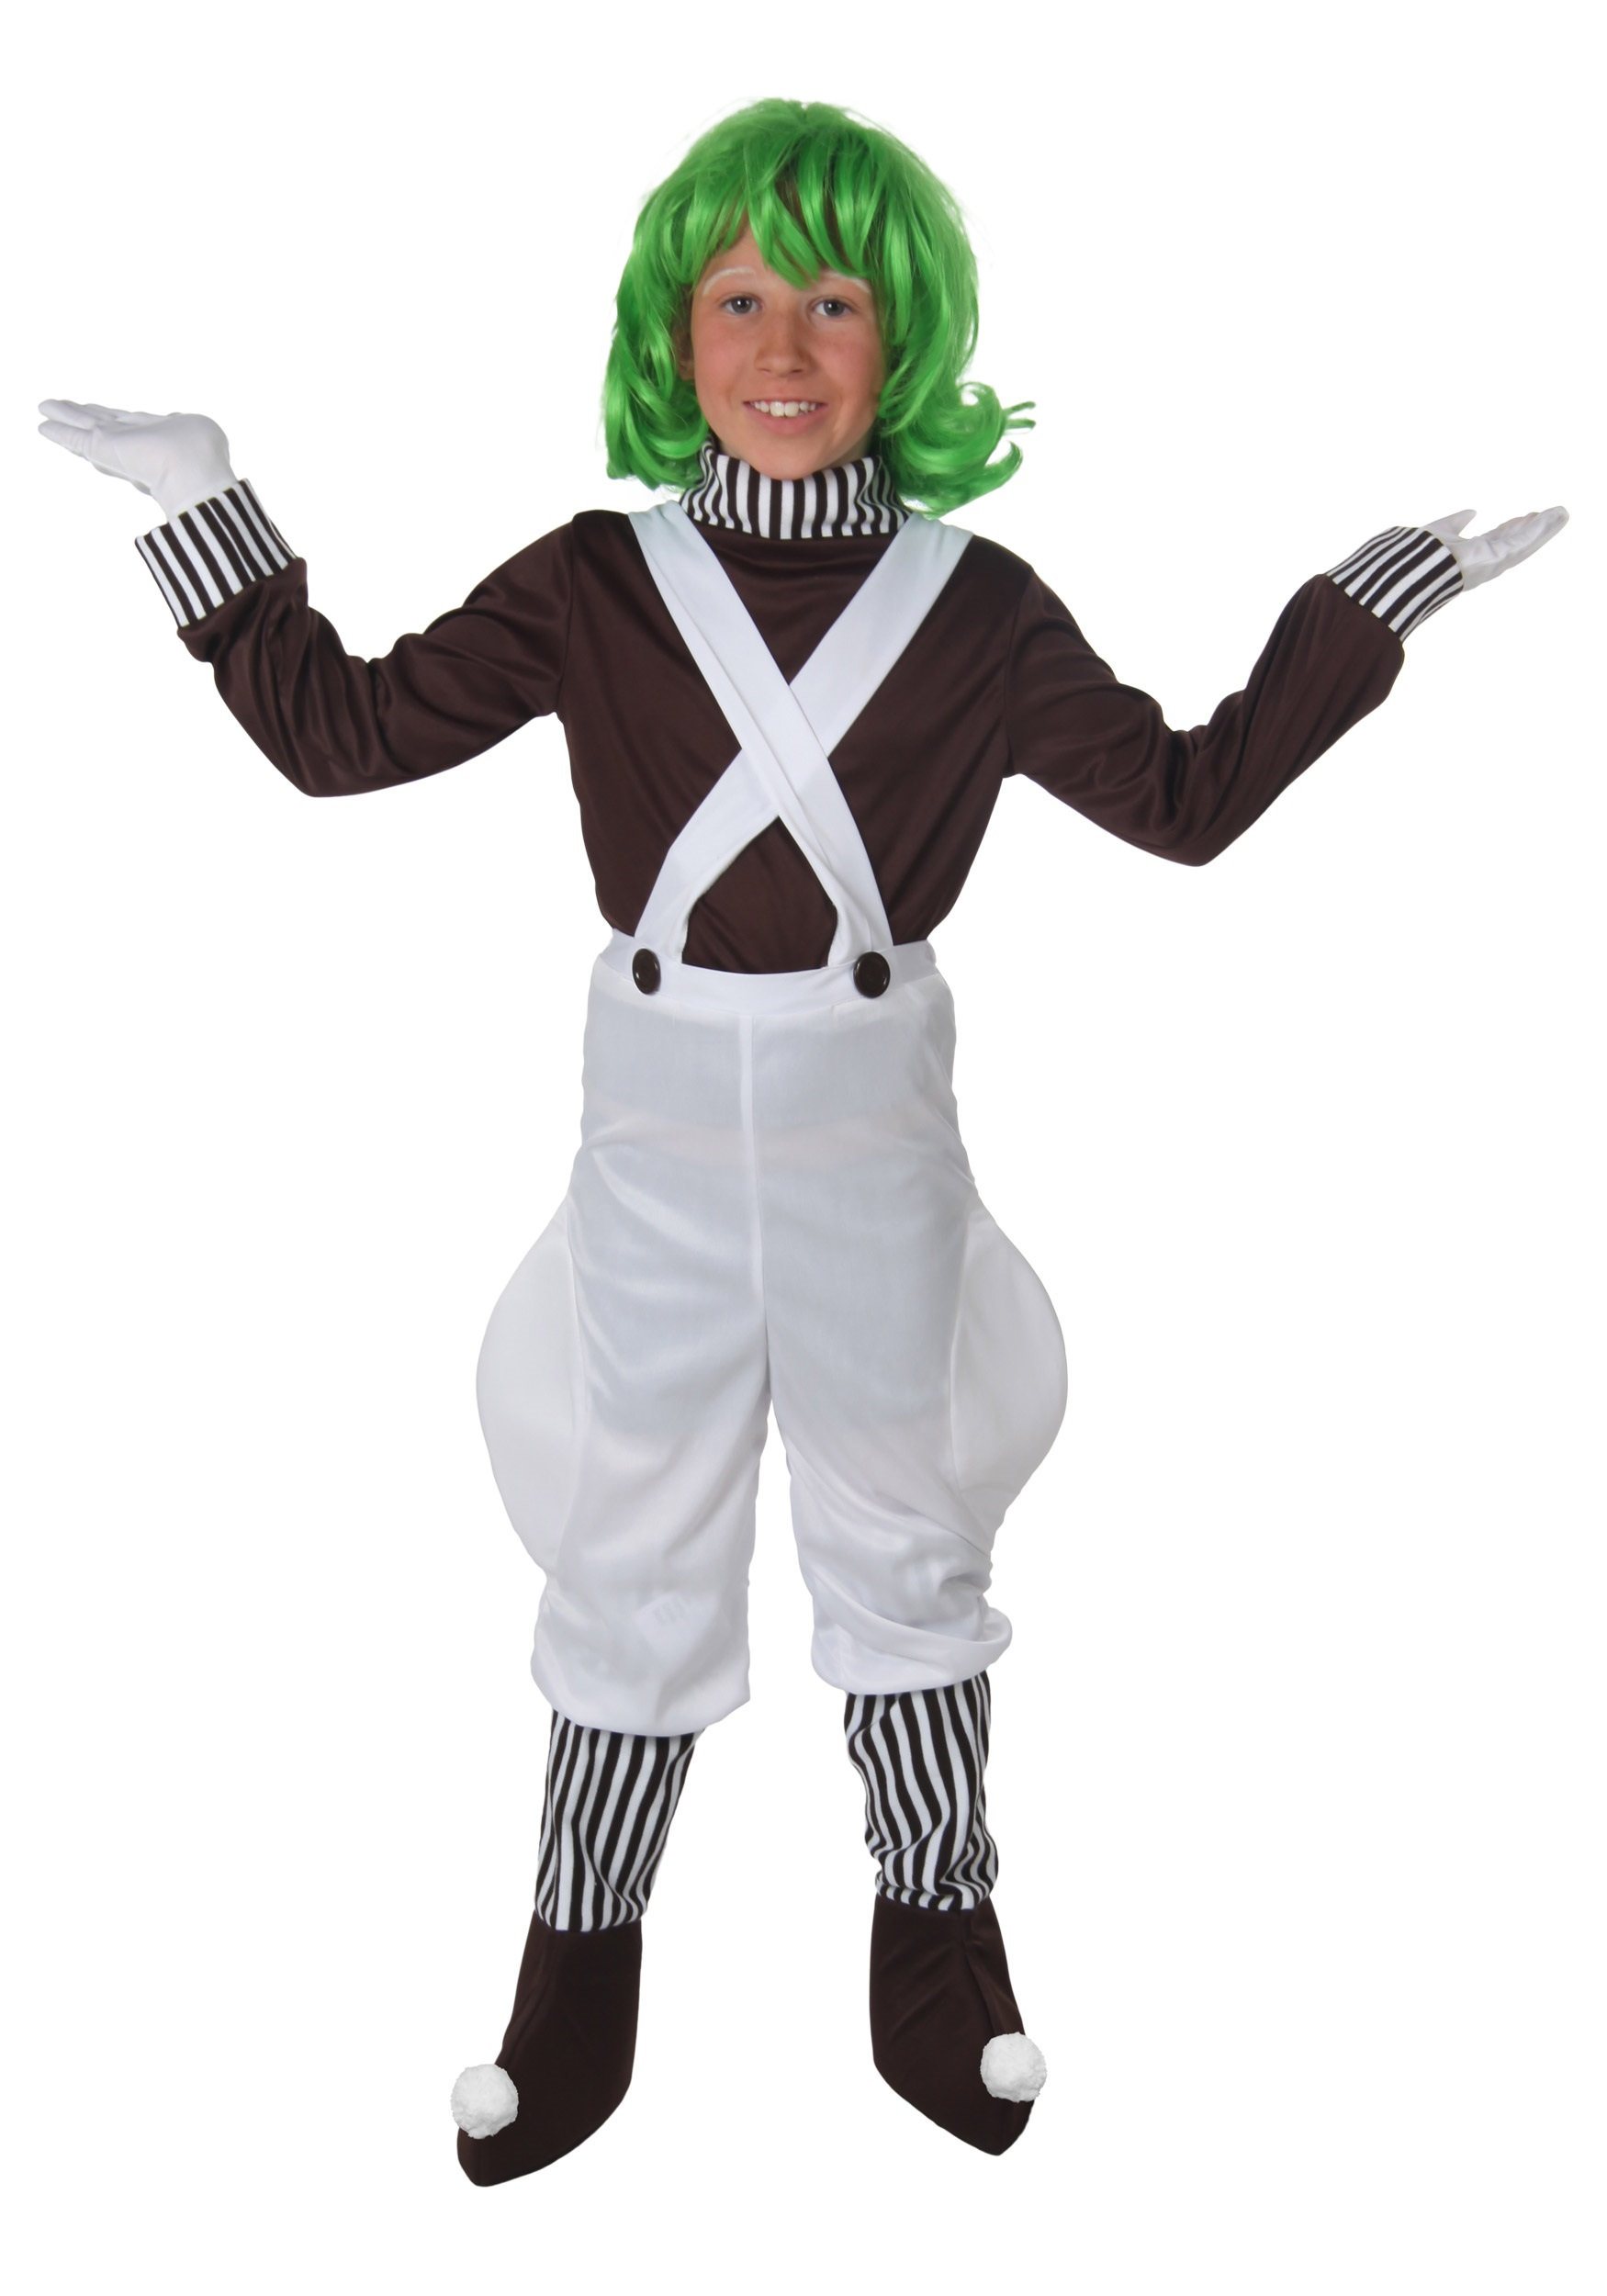 Kids Chocolate Factory Worker Costume  sc 1 st  Halloween Costumes & Kids Oompa Loompa Costume